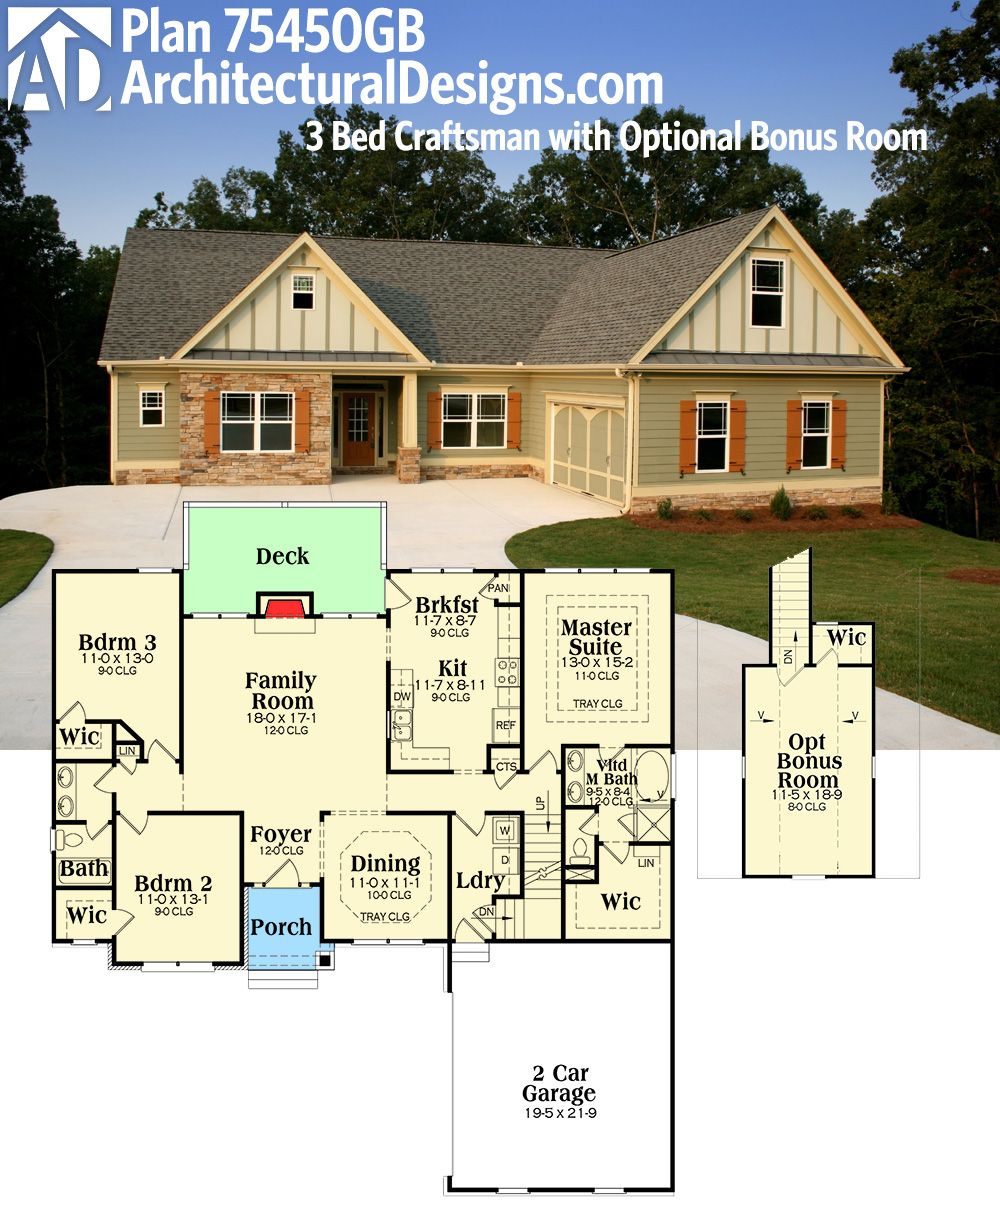 Plan 75450gb 3 Bed Craftsman With Optional Bonus Room